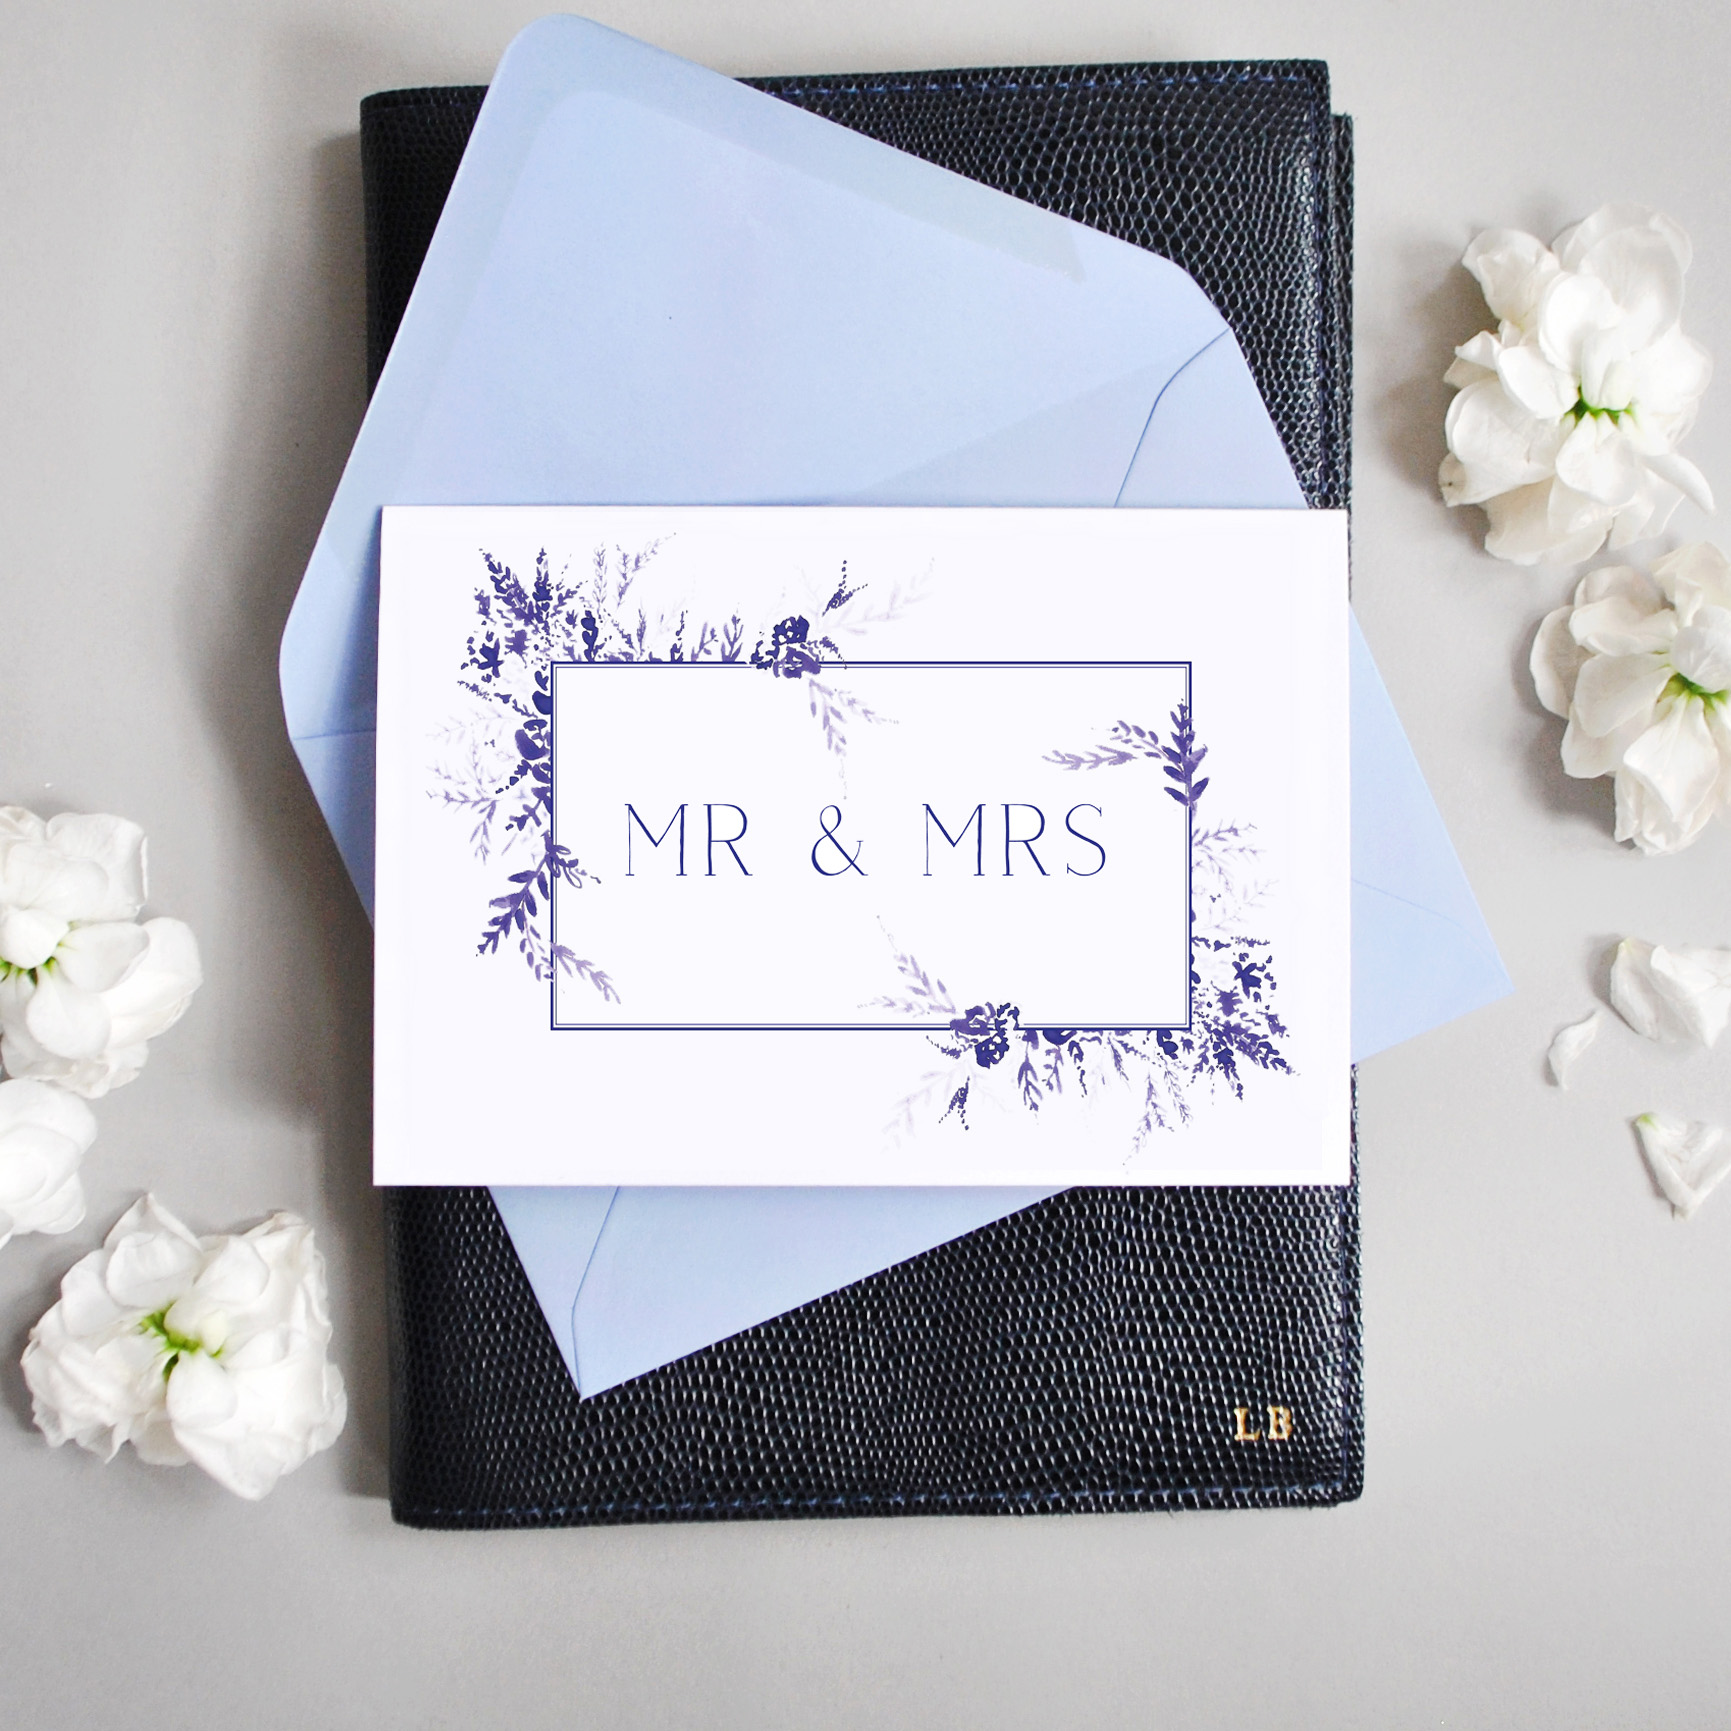 Wedding Collection Mr & Mrs - Cropped (low res).jpg